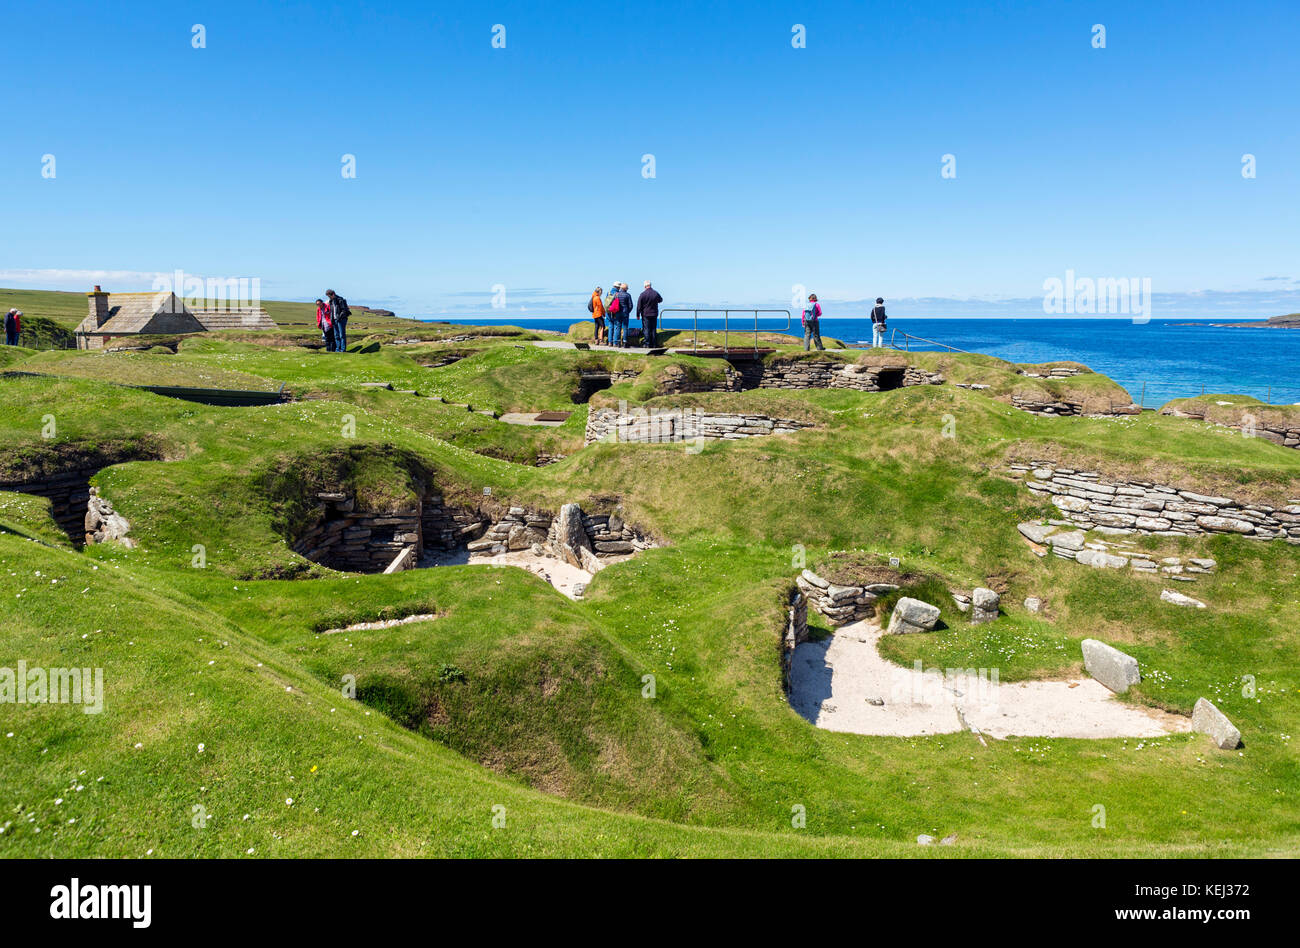 Neolithic settlement of Skara Brae, Mainland, Orkney, Orkney Islands, Scotland, UK - Stock Image